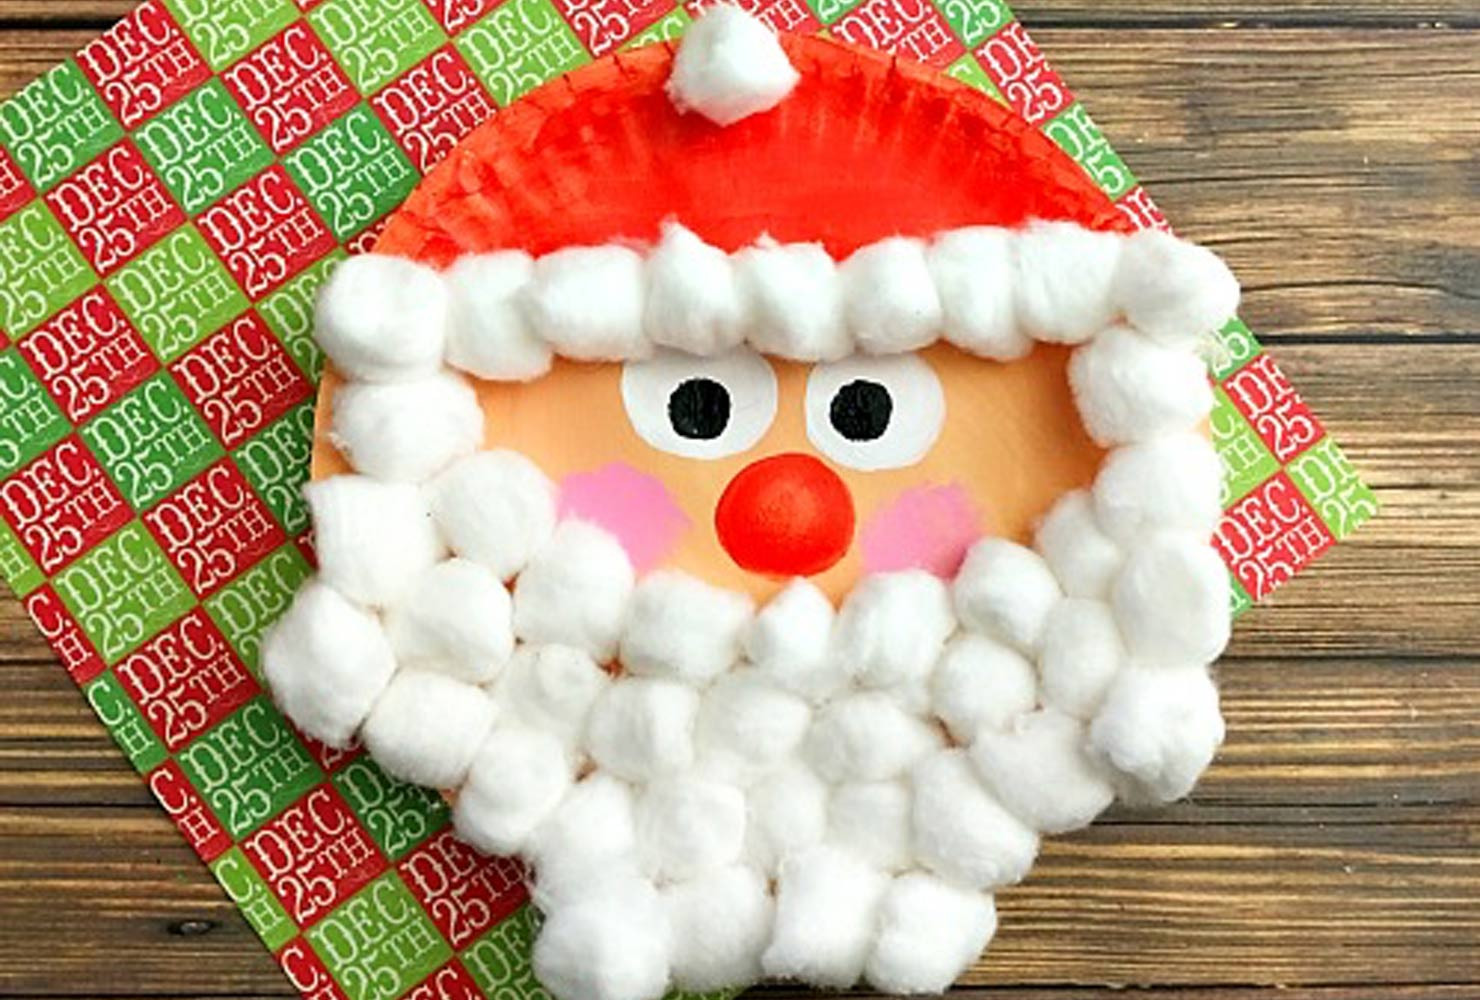 Christmas Arts And Craft Ideas For Toddlers  29 Christmas Crafts for Kids Free Printable Crafts